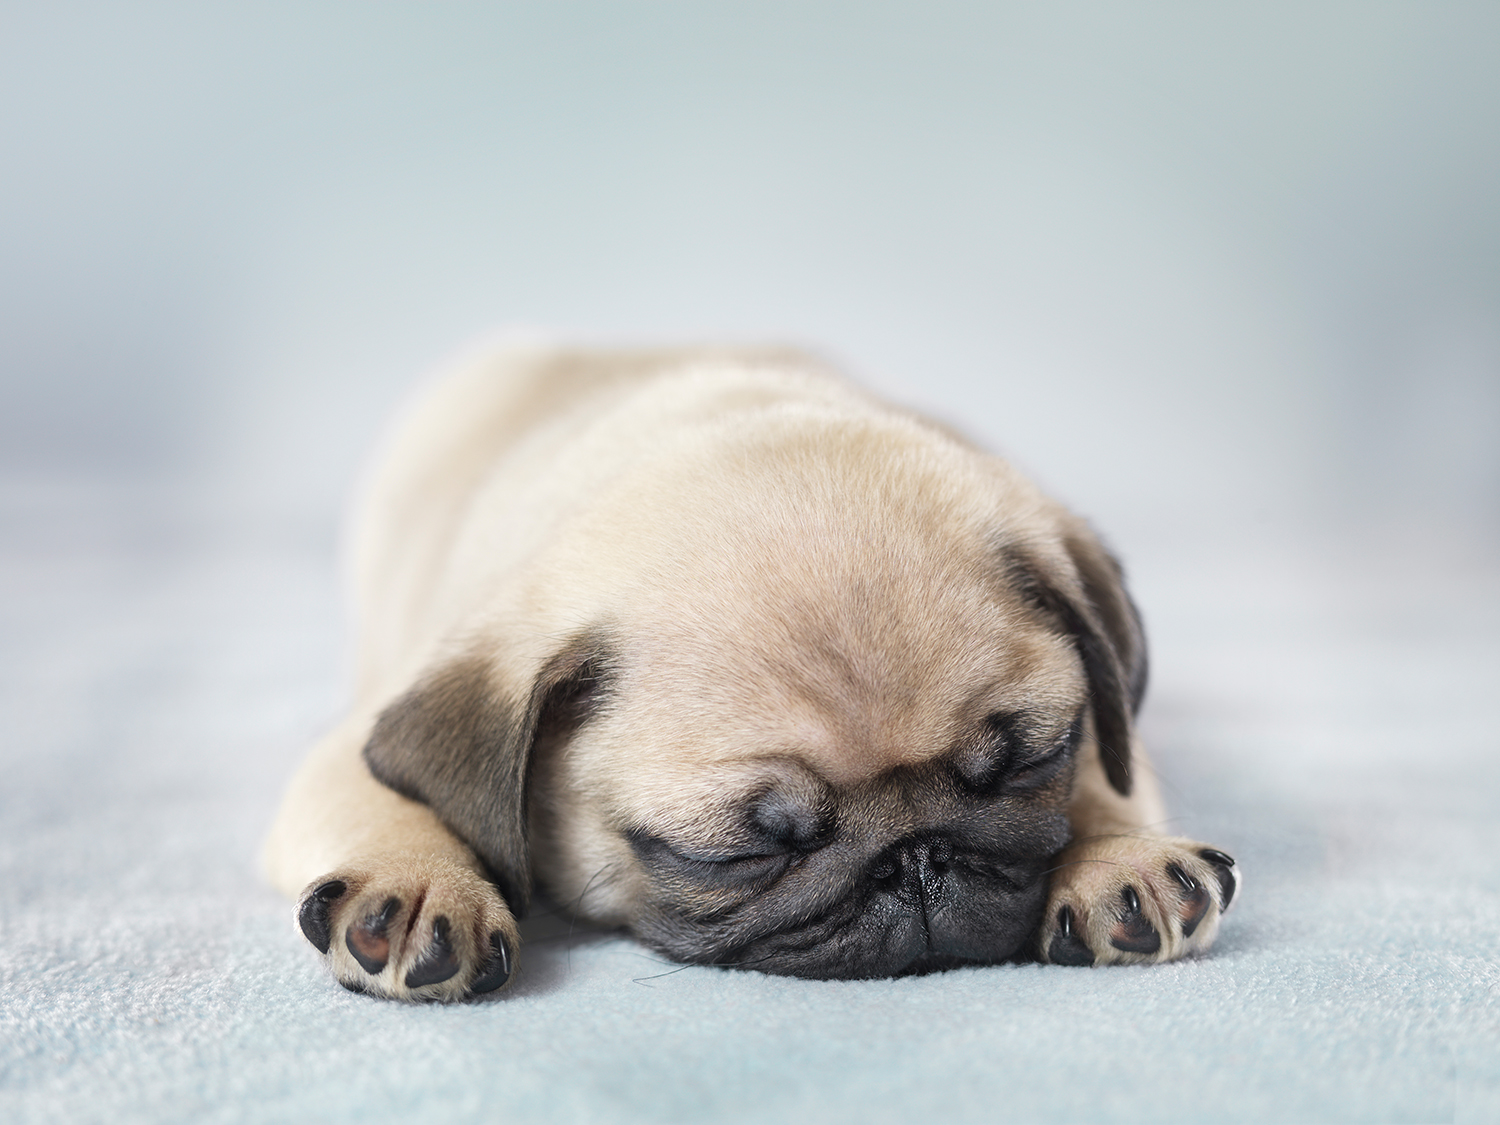 Pug Puppy Dreaming of Humans